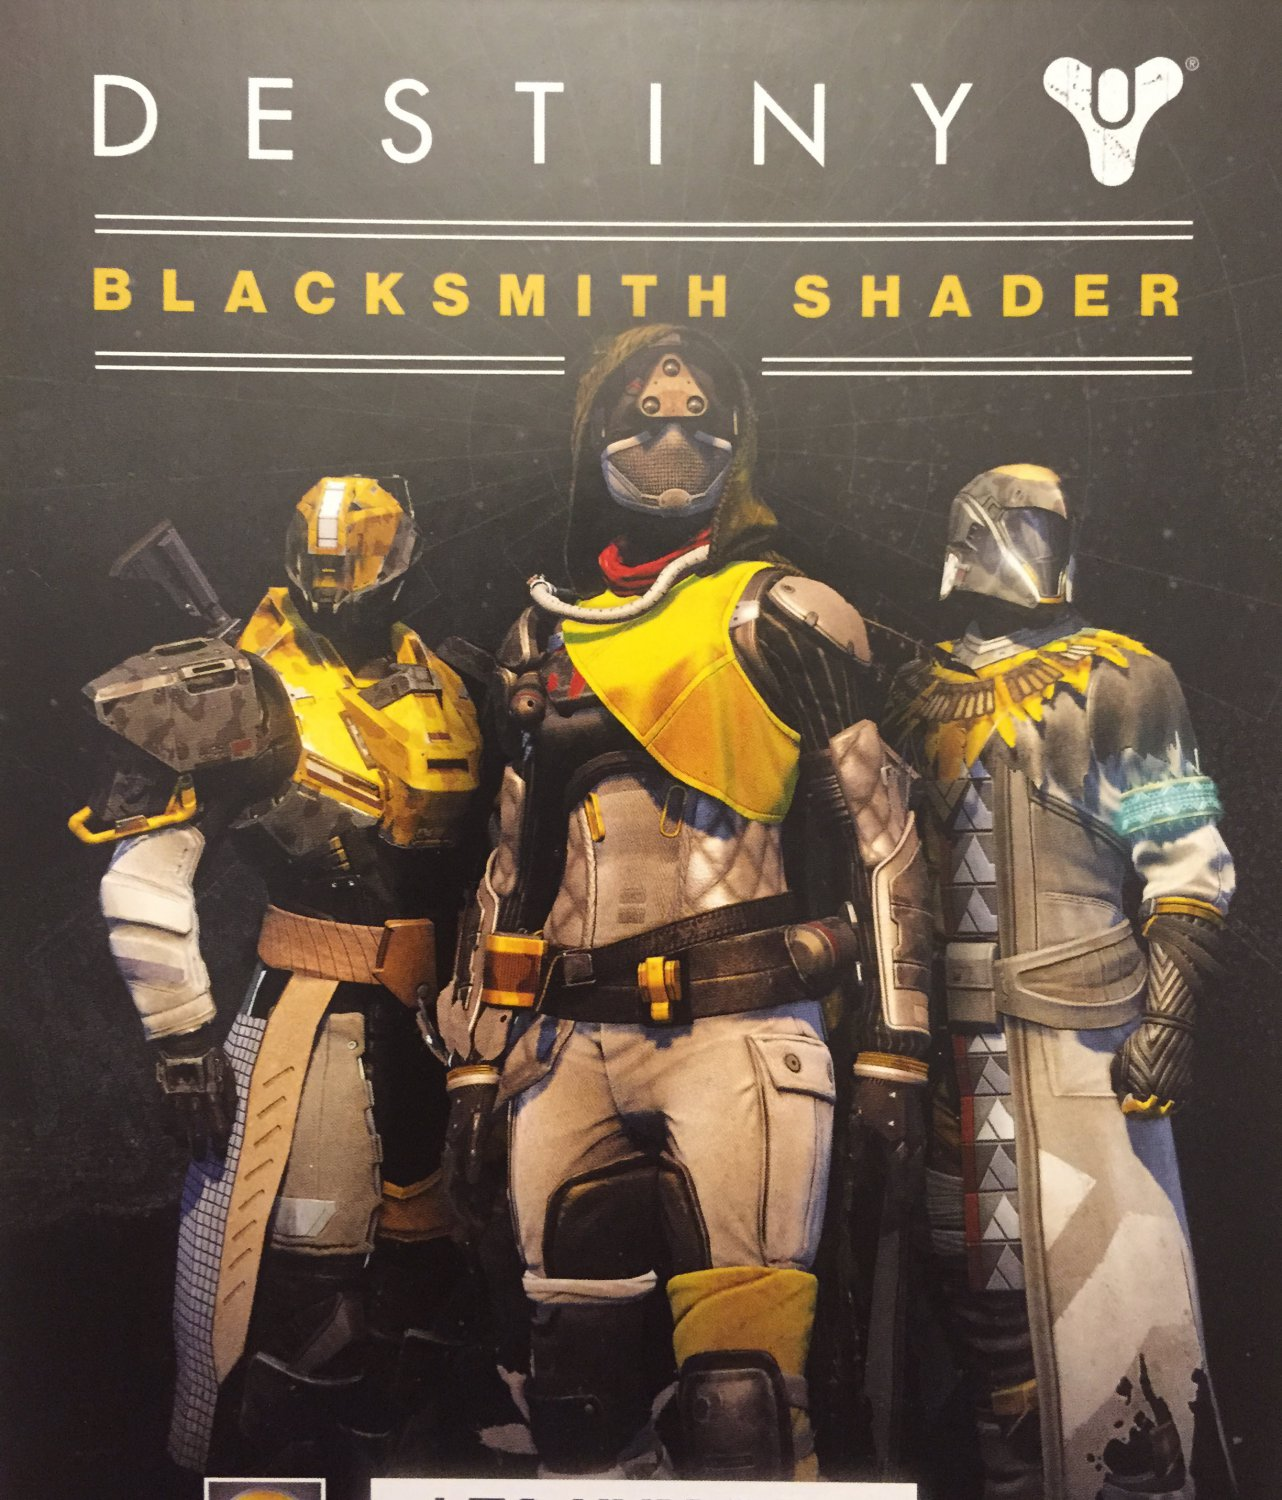 Blacksmith Shader